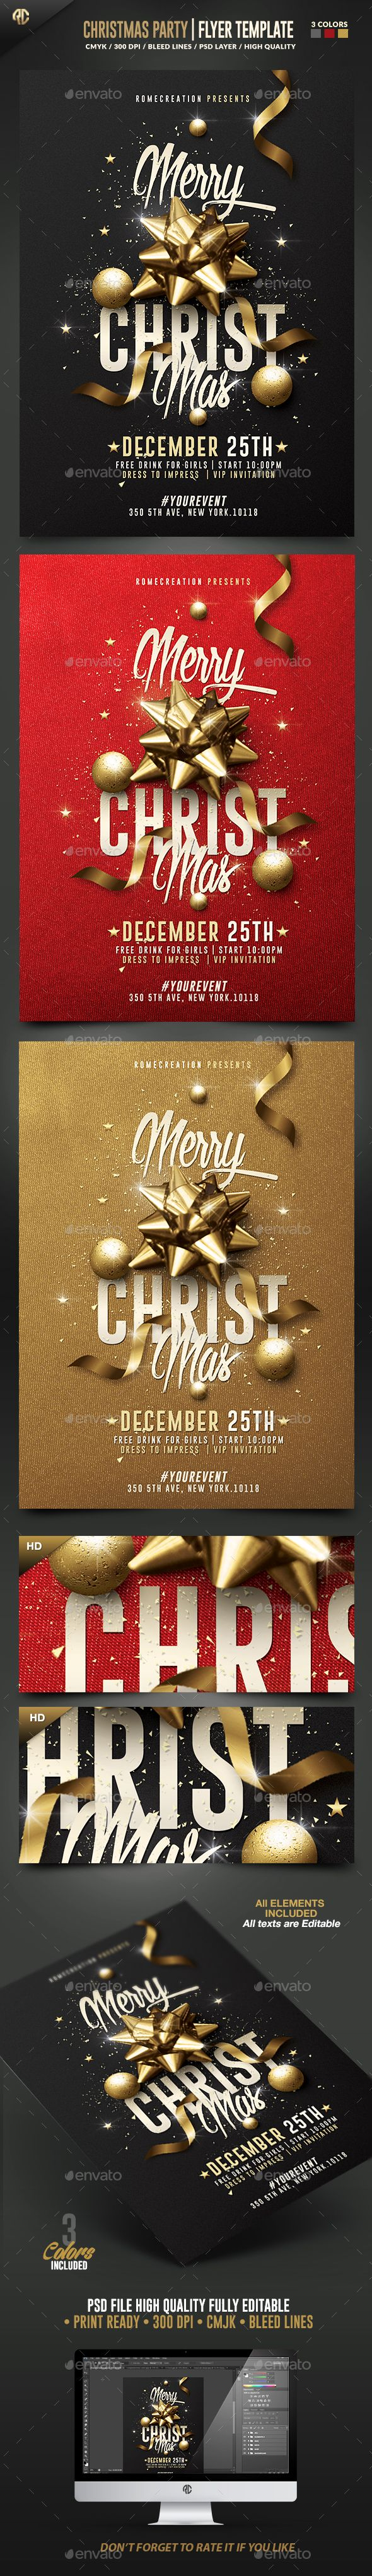 Poster design free download - Classy Christmas Party Flyer Template Psd Design Download Http Graphicriver